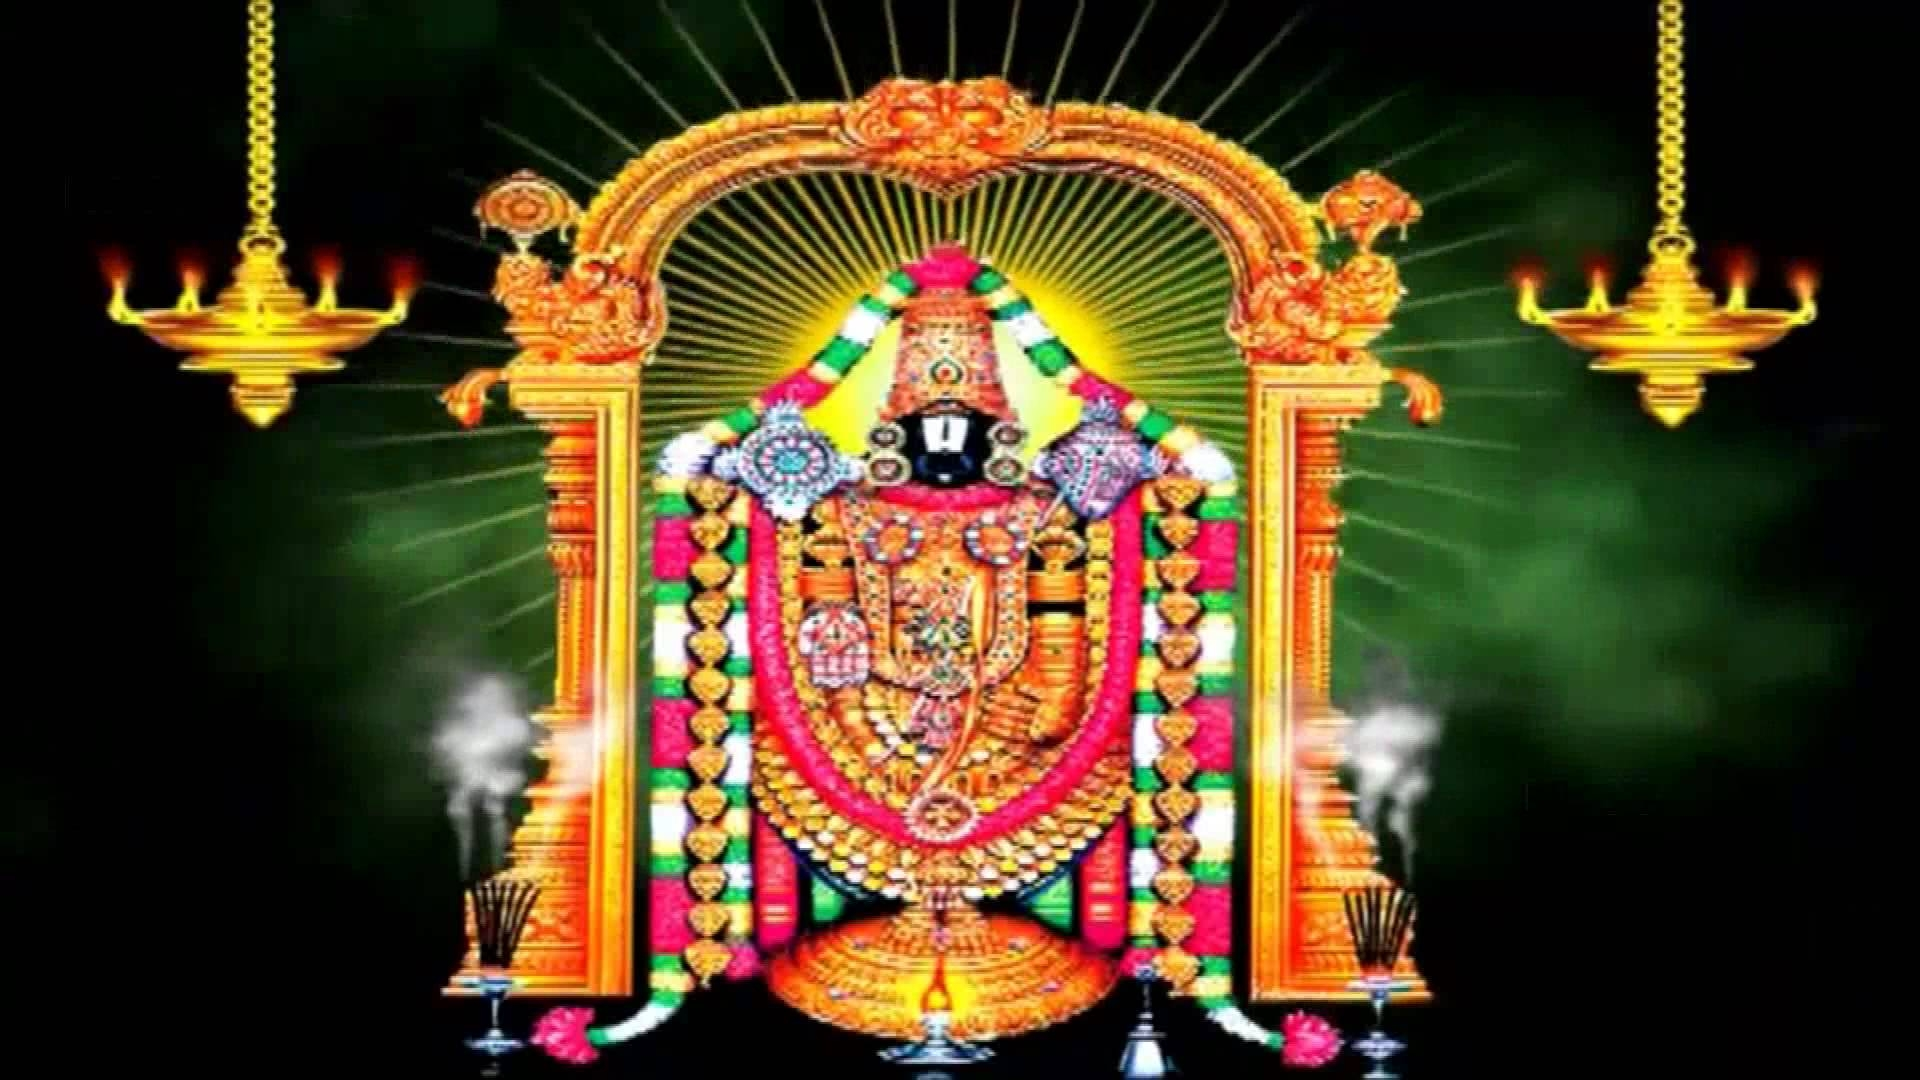 Lord Venkateswara Hd Wallpapers For Desktop 1080p Tirupati Balaji Original Photo 2015 274527 Hd Wallpaper Backgrounds Download